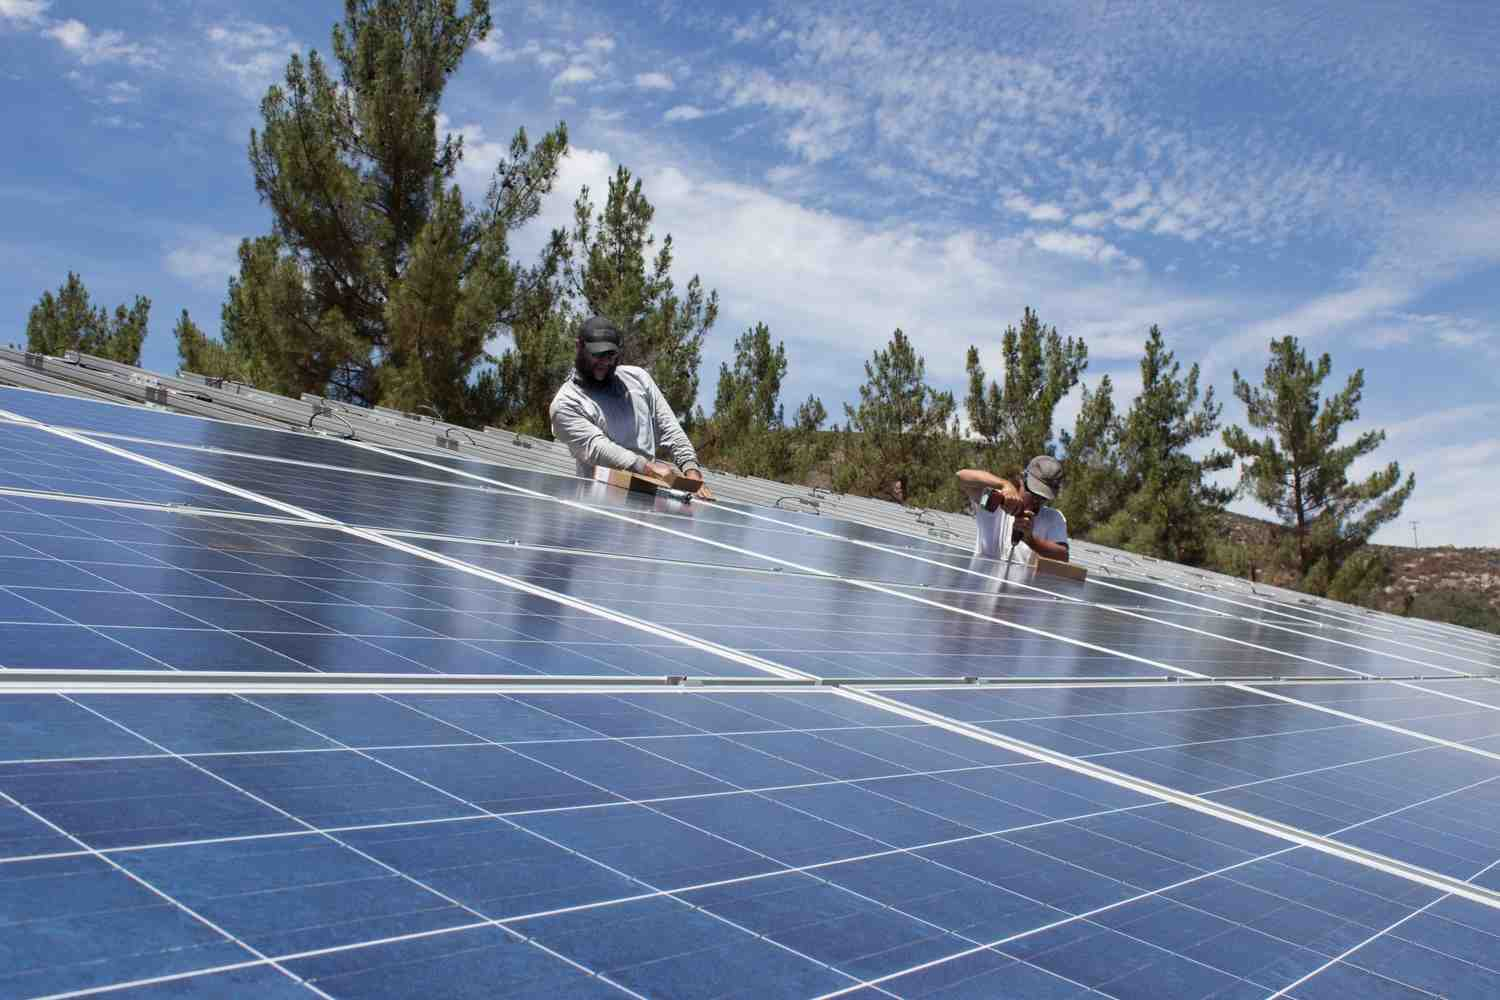 How much does it cost to install solar panels in Pennsylvania?